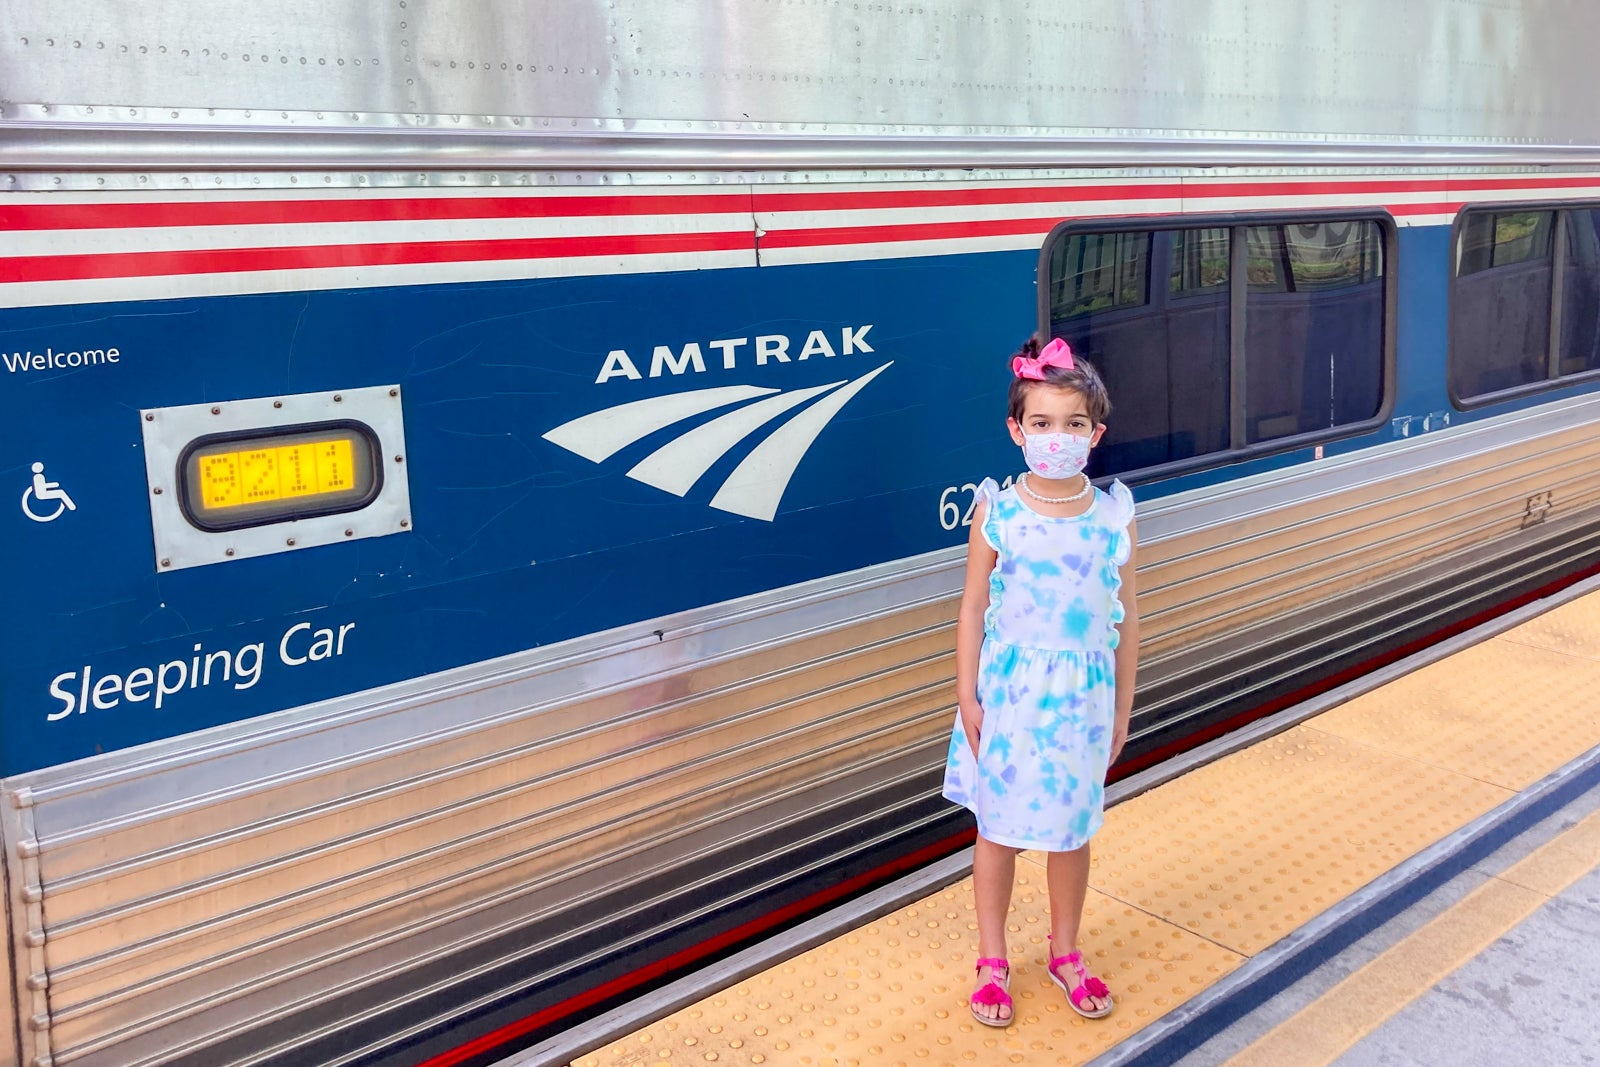 My daughter and I took a train while my wife flew from Florida to DC — here's what it was like - The Points Guy